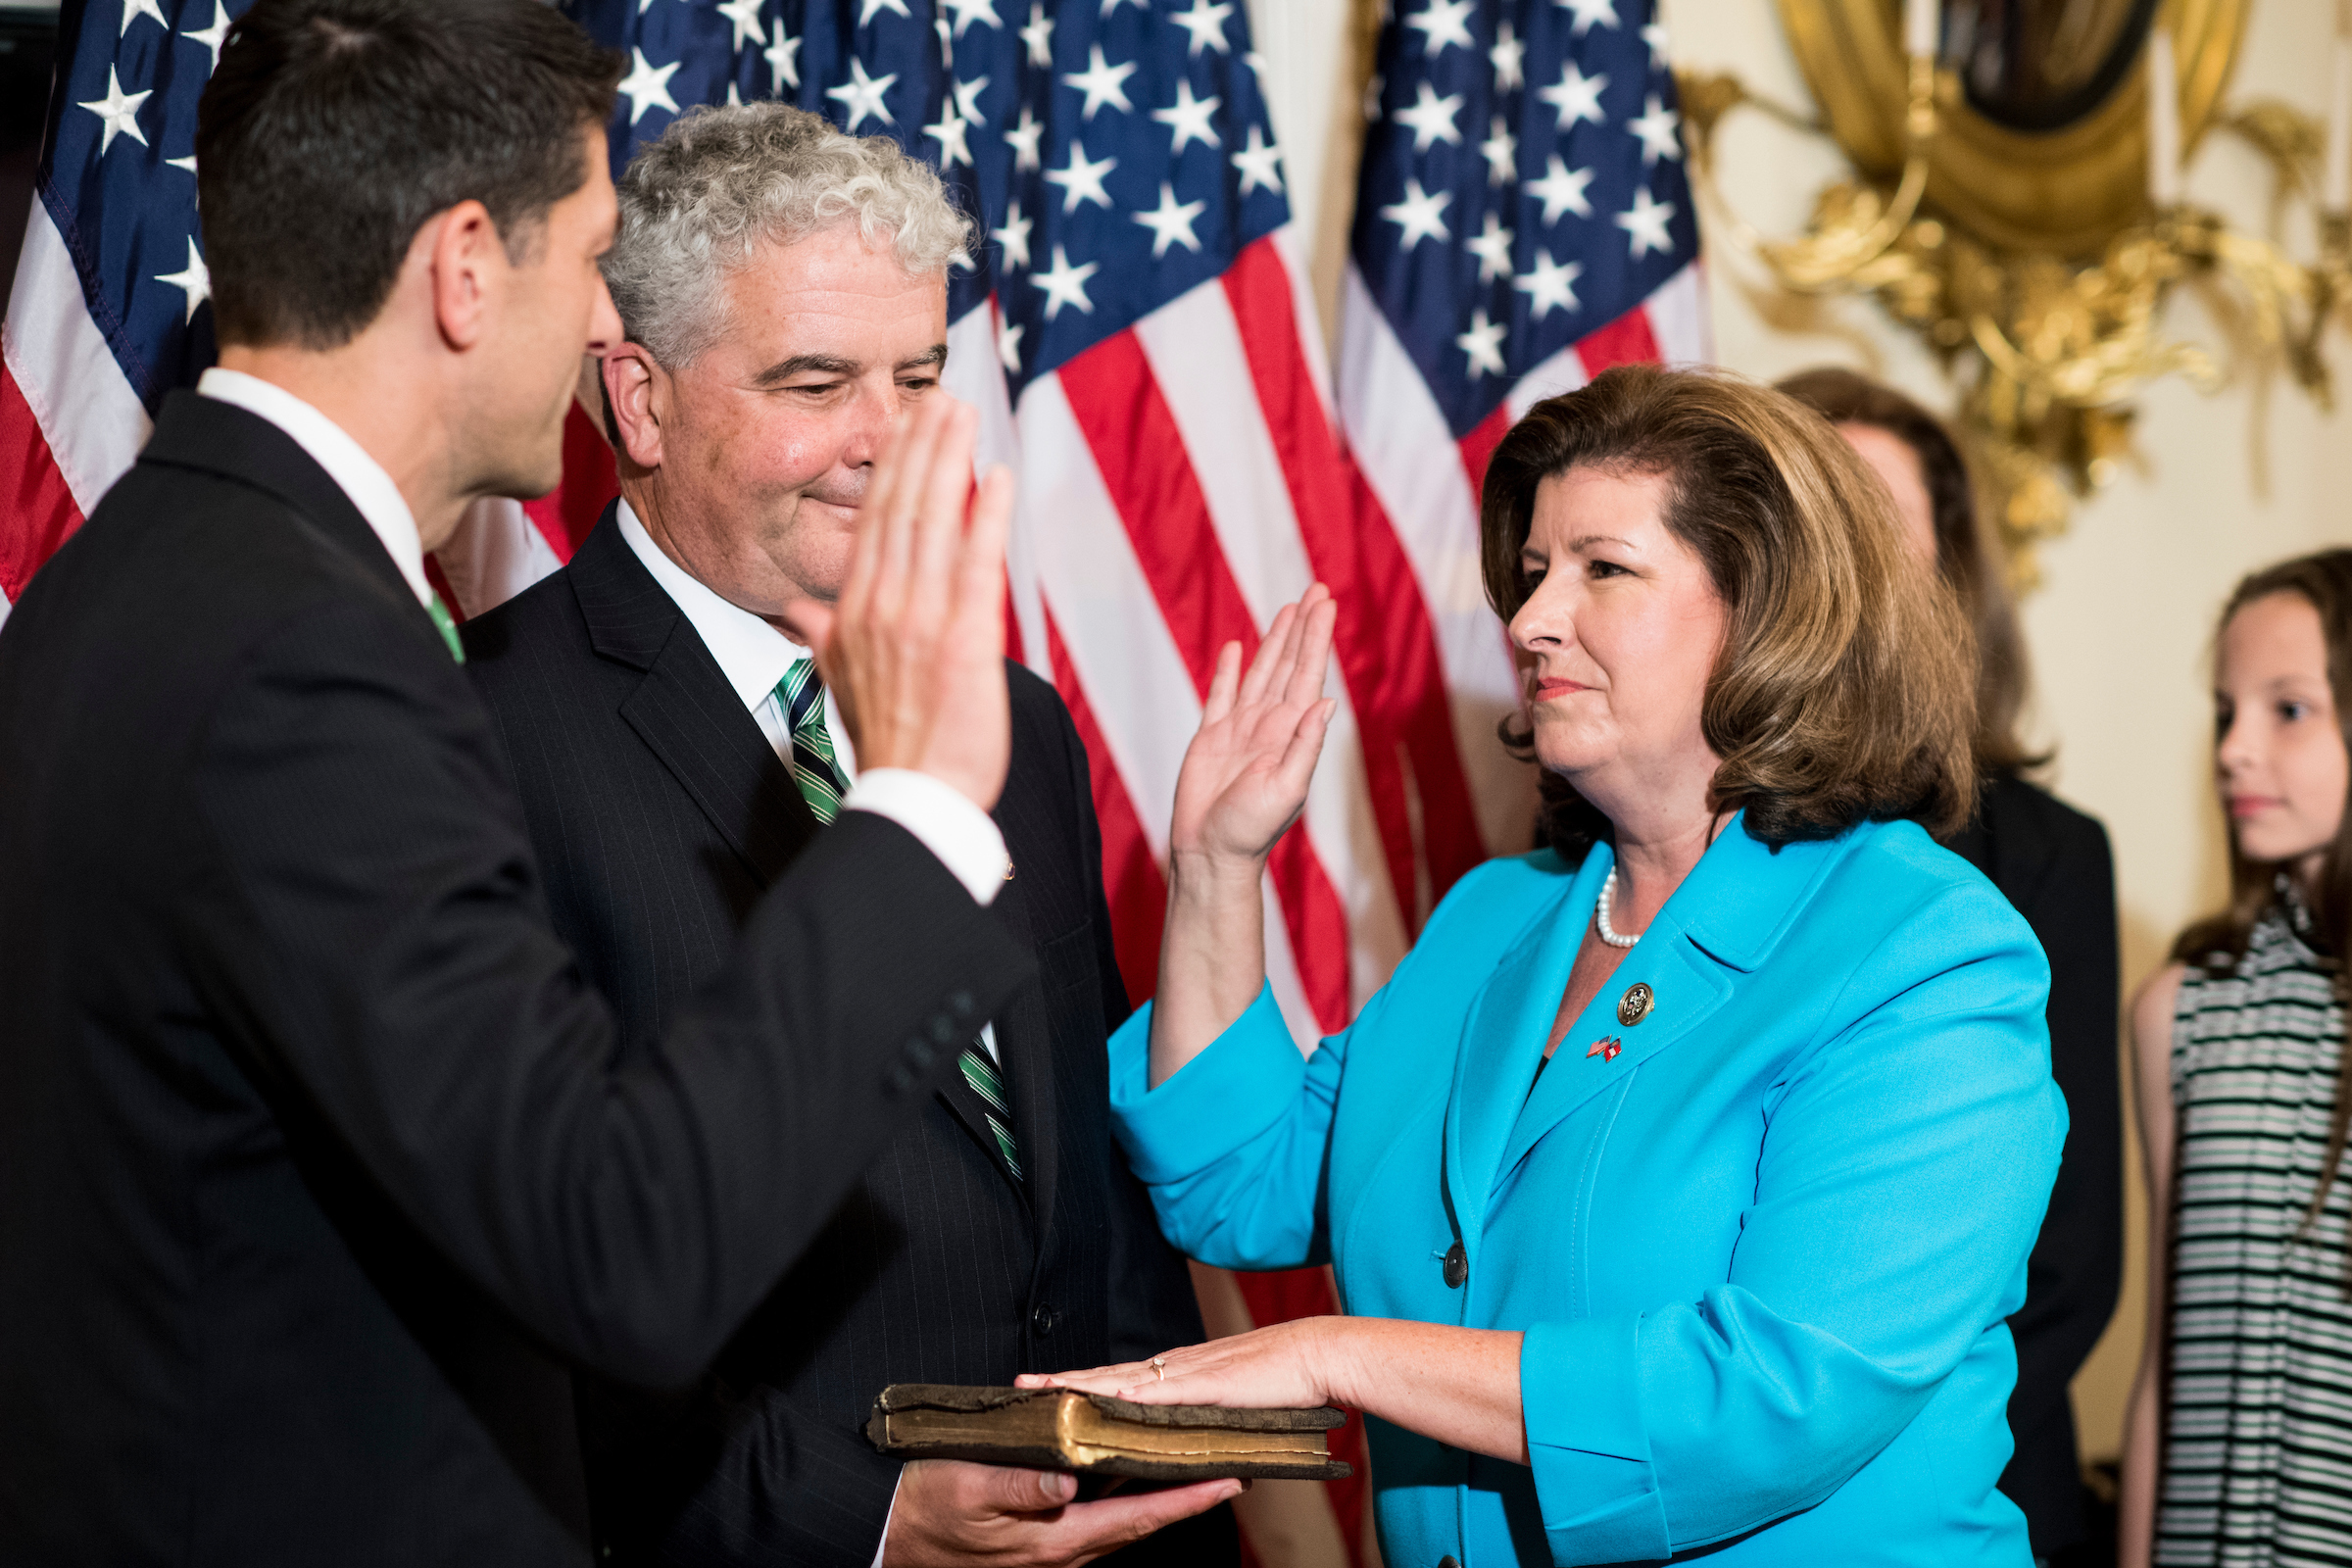 JUNE 26: Speaker of the House Paul D. Ryan, R-Wis., conducts a ceremonial swearing in of Rep. Karen Handel, R-Ga., in the Capitol. Handel won a special election to replace Health and Human Services Secretary Tom Price rounding out the special elections resulting from Trump's Cabinet picks. (Bill Clark/CQ Roll Call)